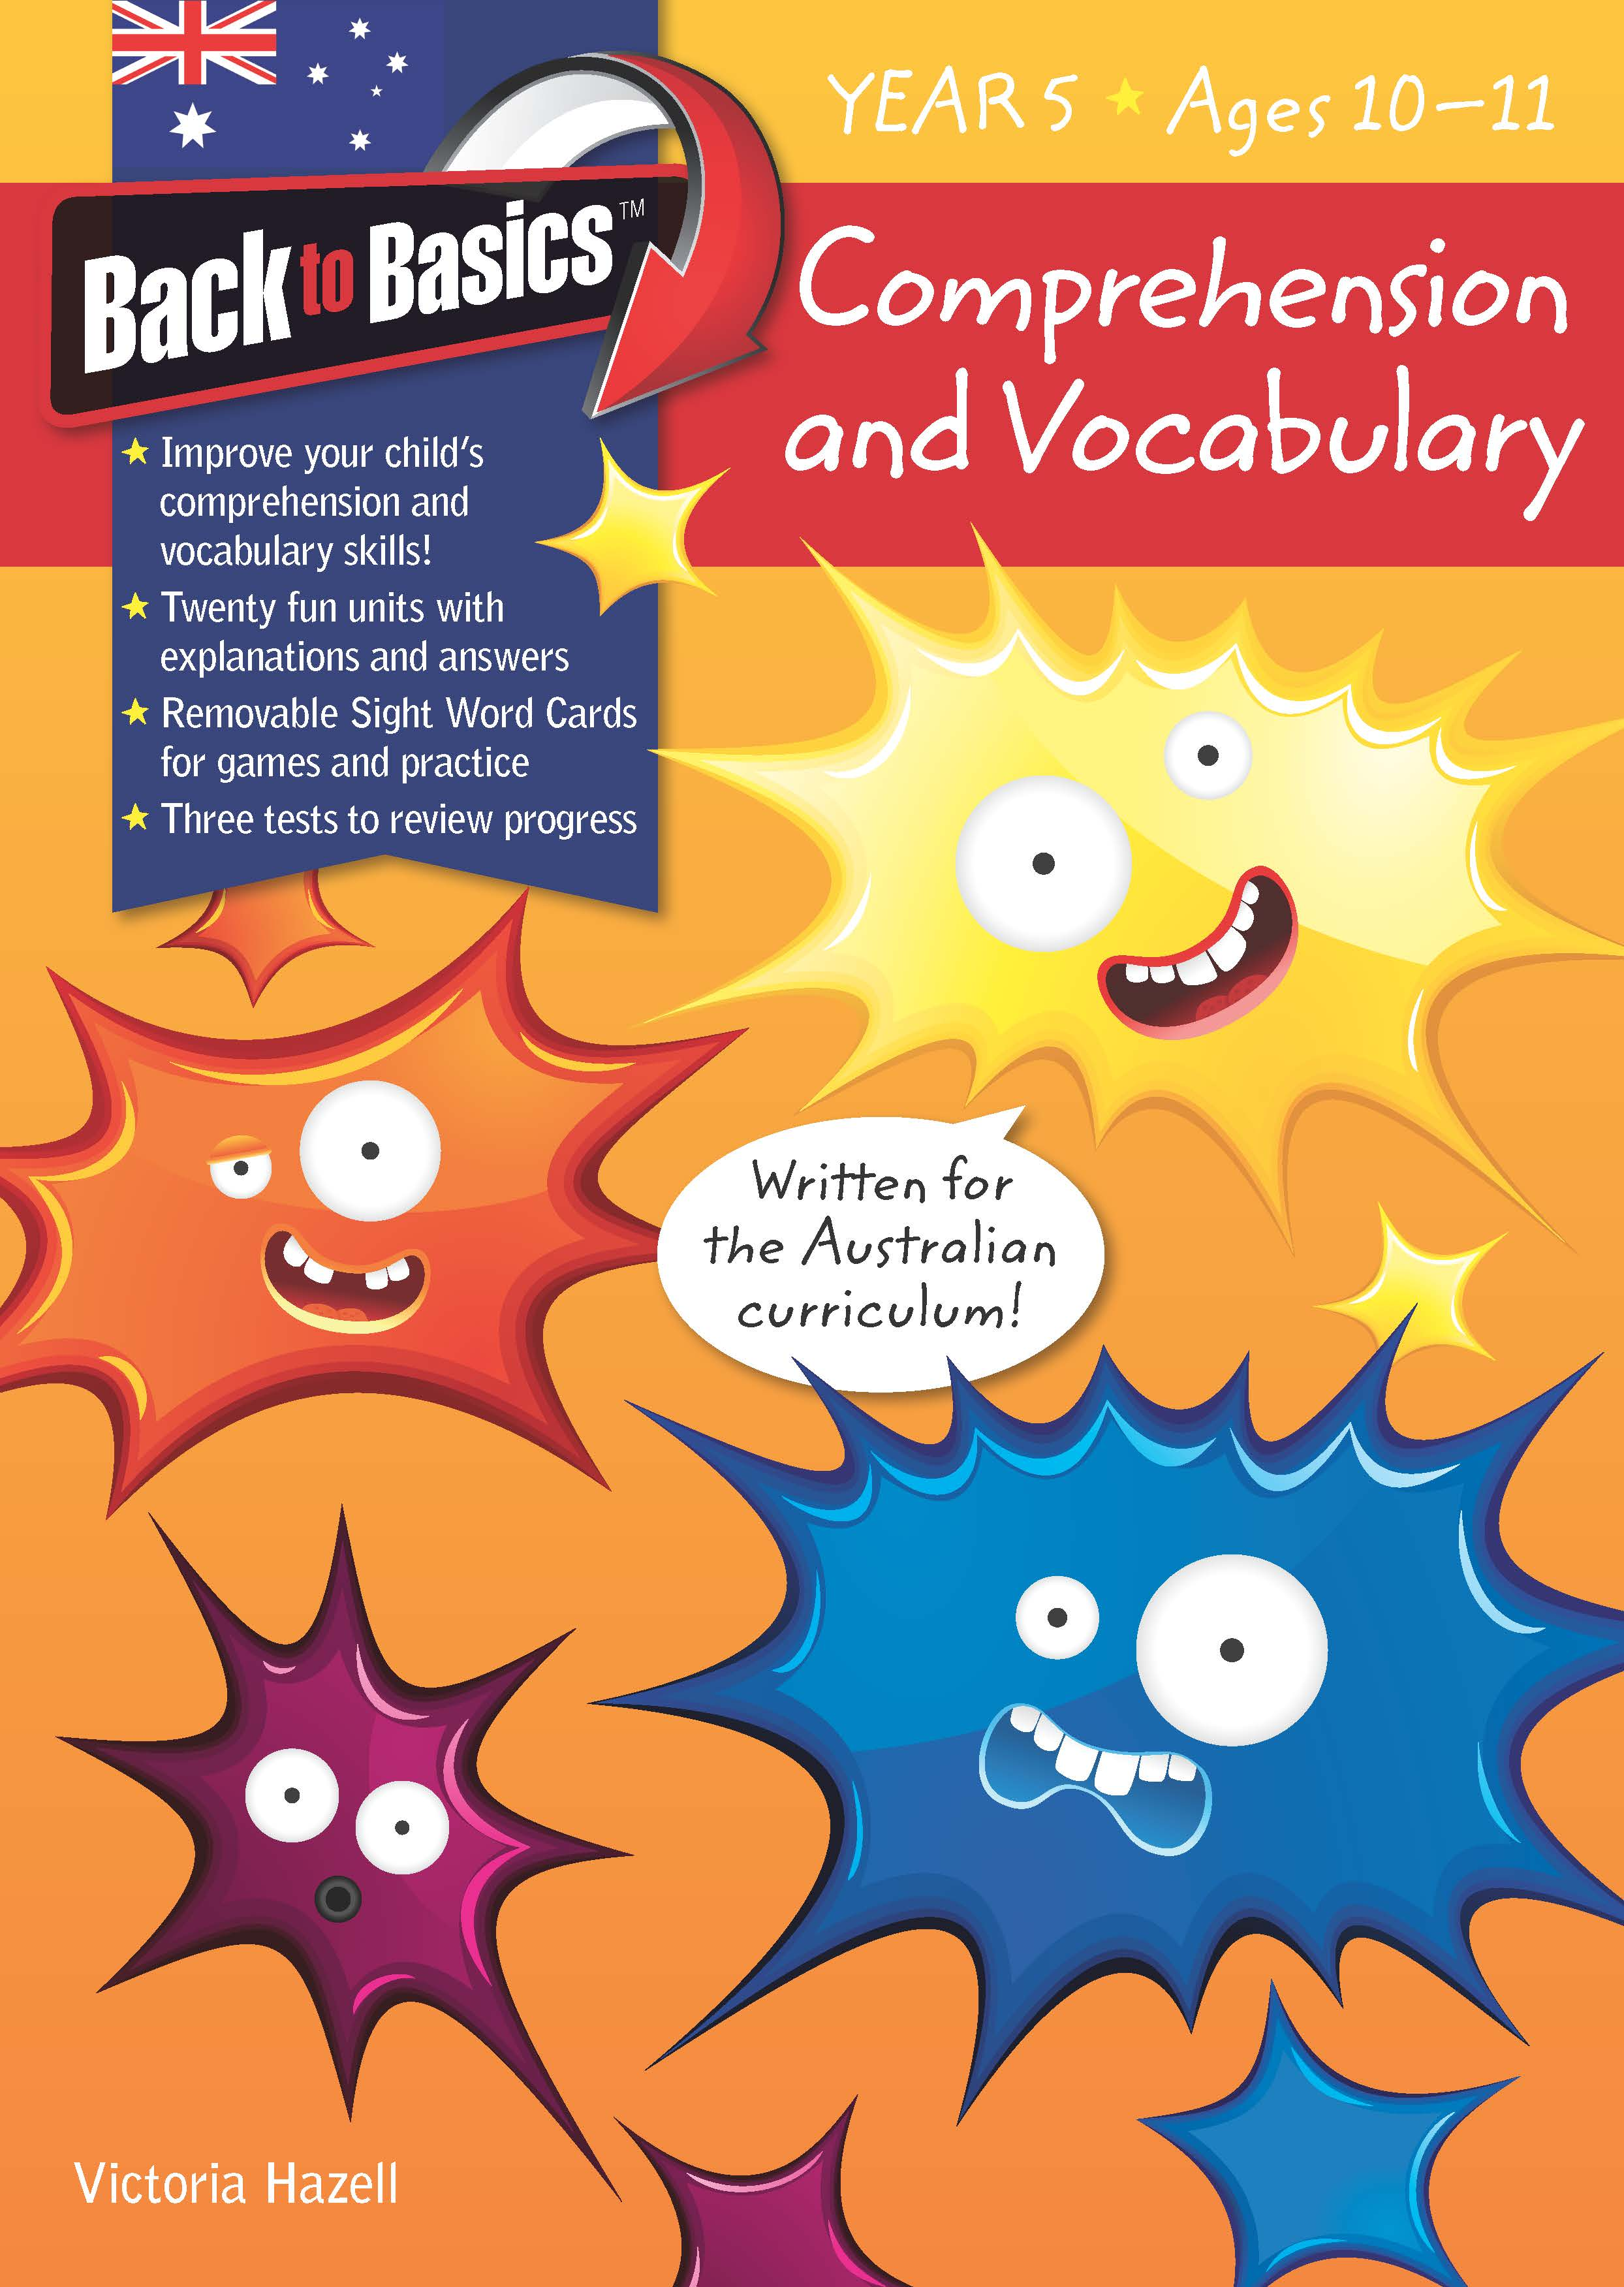 Back to Basics - Comprehension & Vocabulary Year 5